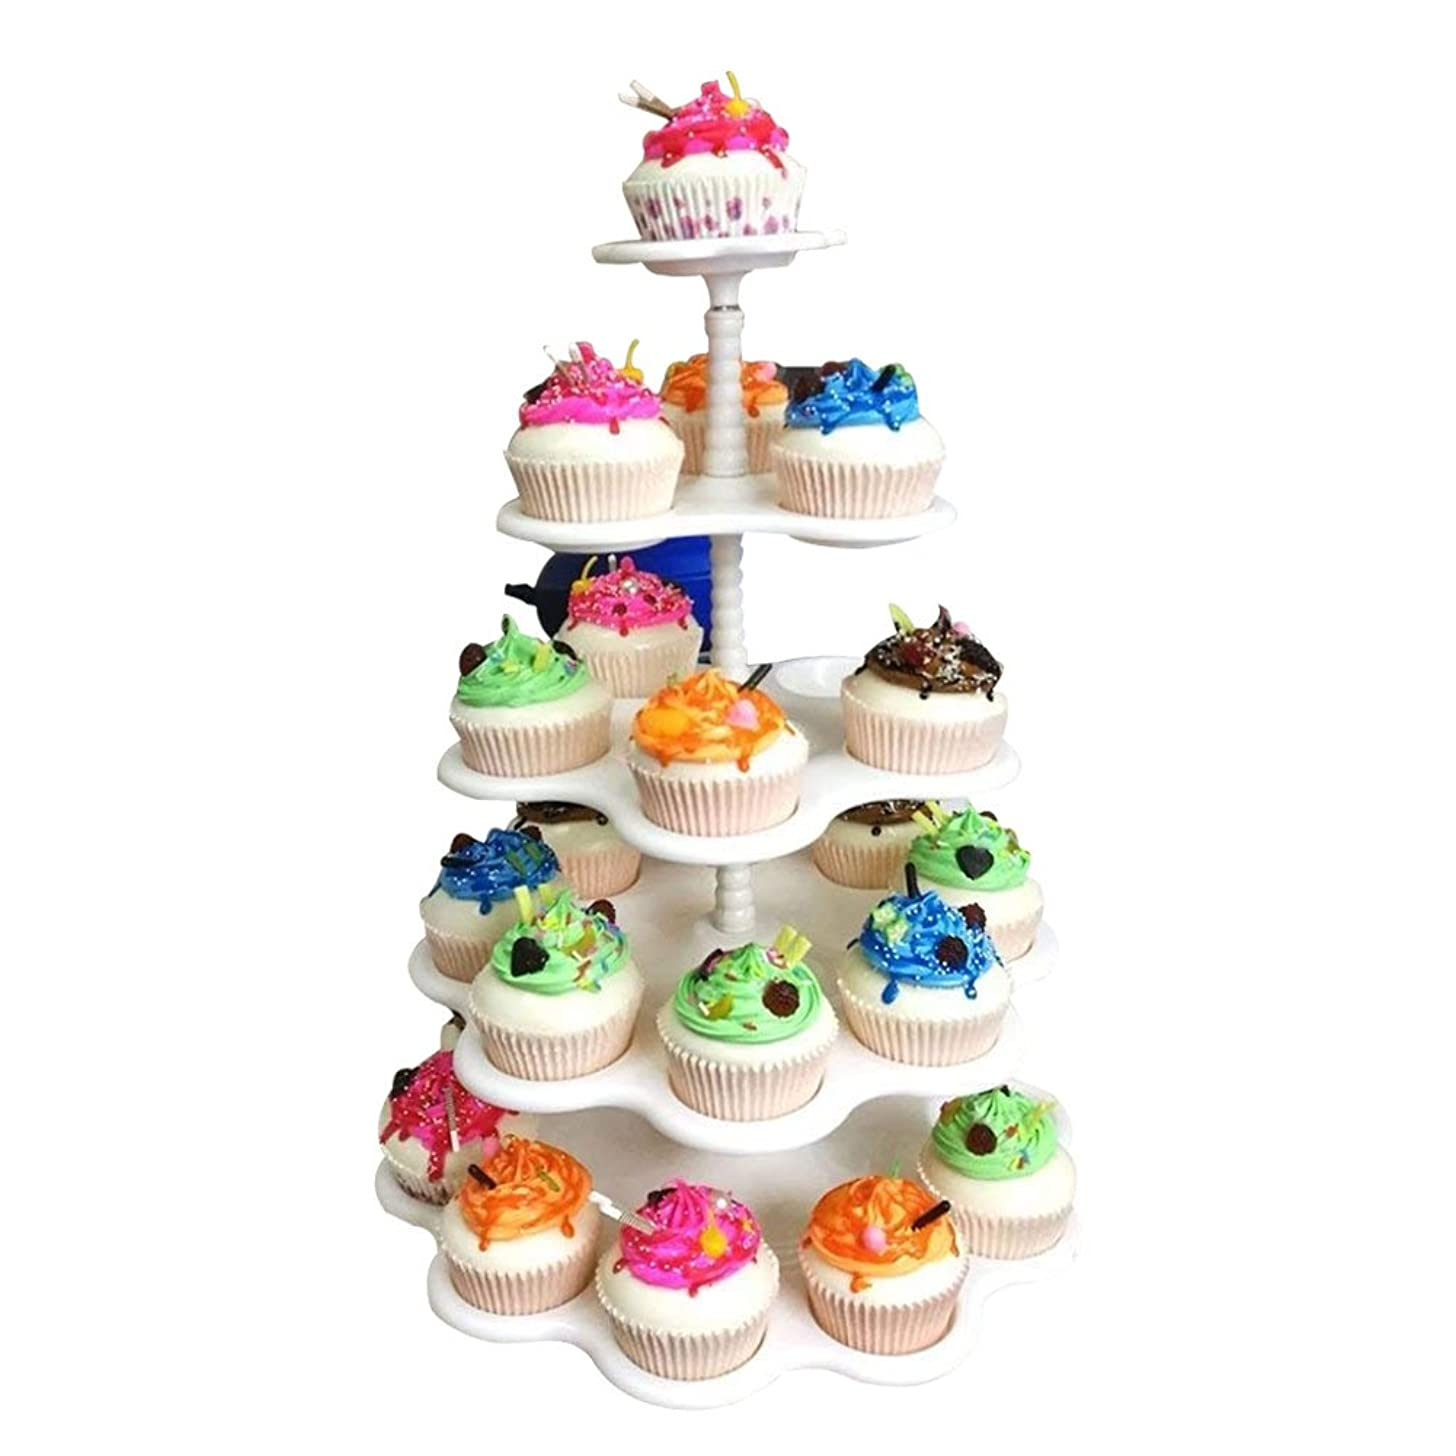 Agyvvt 5-Tier Round Cupcake Stand-Holder,Display Tree Tower Cake Plate,Tea Party Serving Platter Stand For Wedding  Home  Birthday Party White